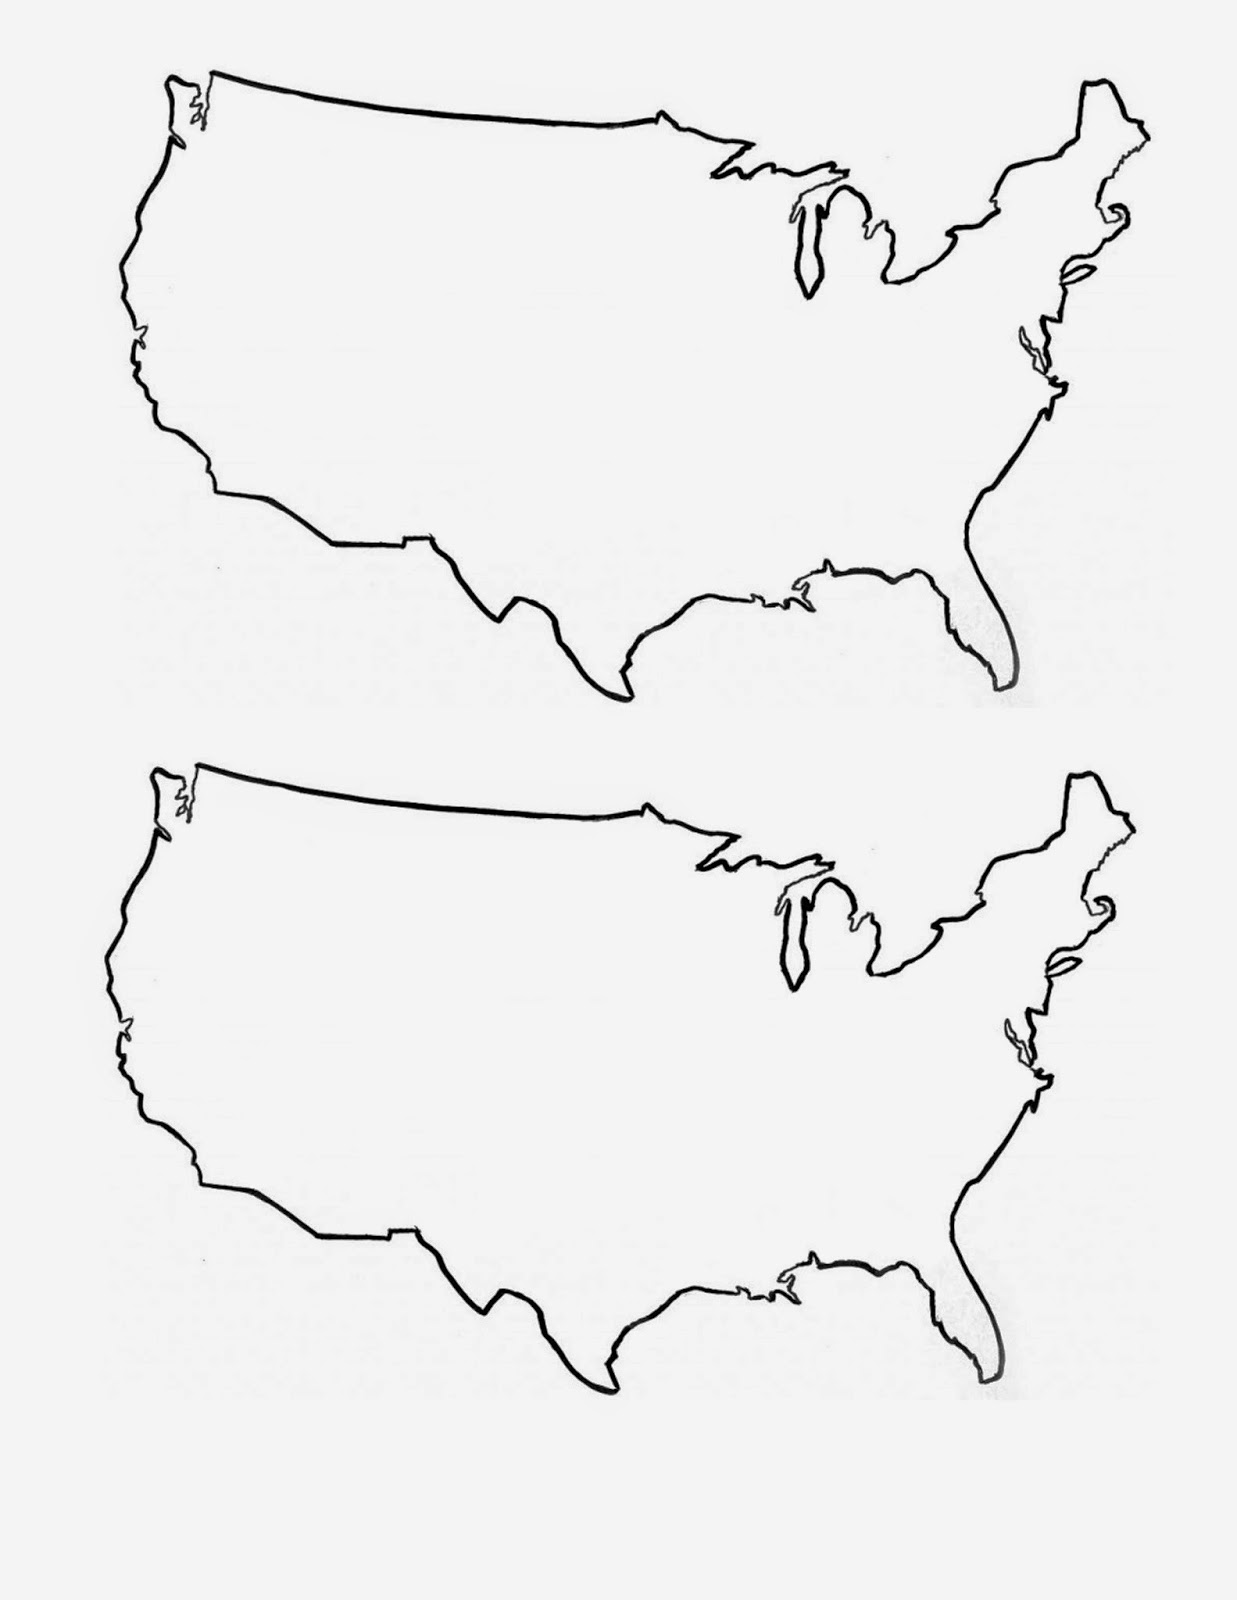 blank map of usa with Love My State Or Usa Diy Jewelry on Night Stalker V ire Weapon as well Love My State Or Usa Diy Jewelry additionally Carte further Map Of America And Canada as well Namibia Outline Map.